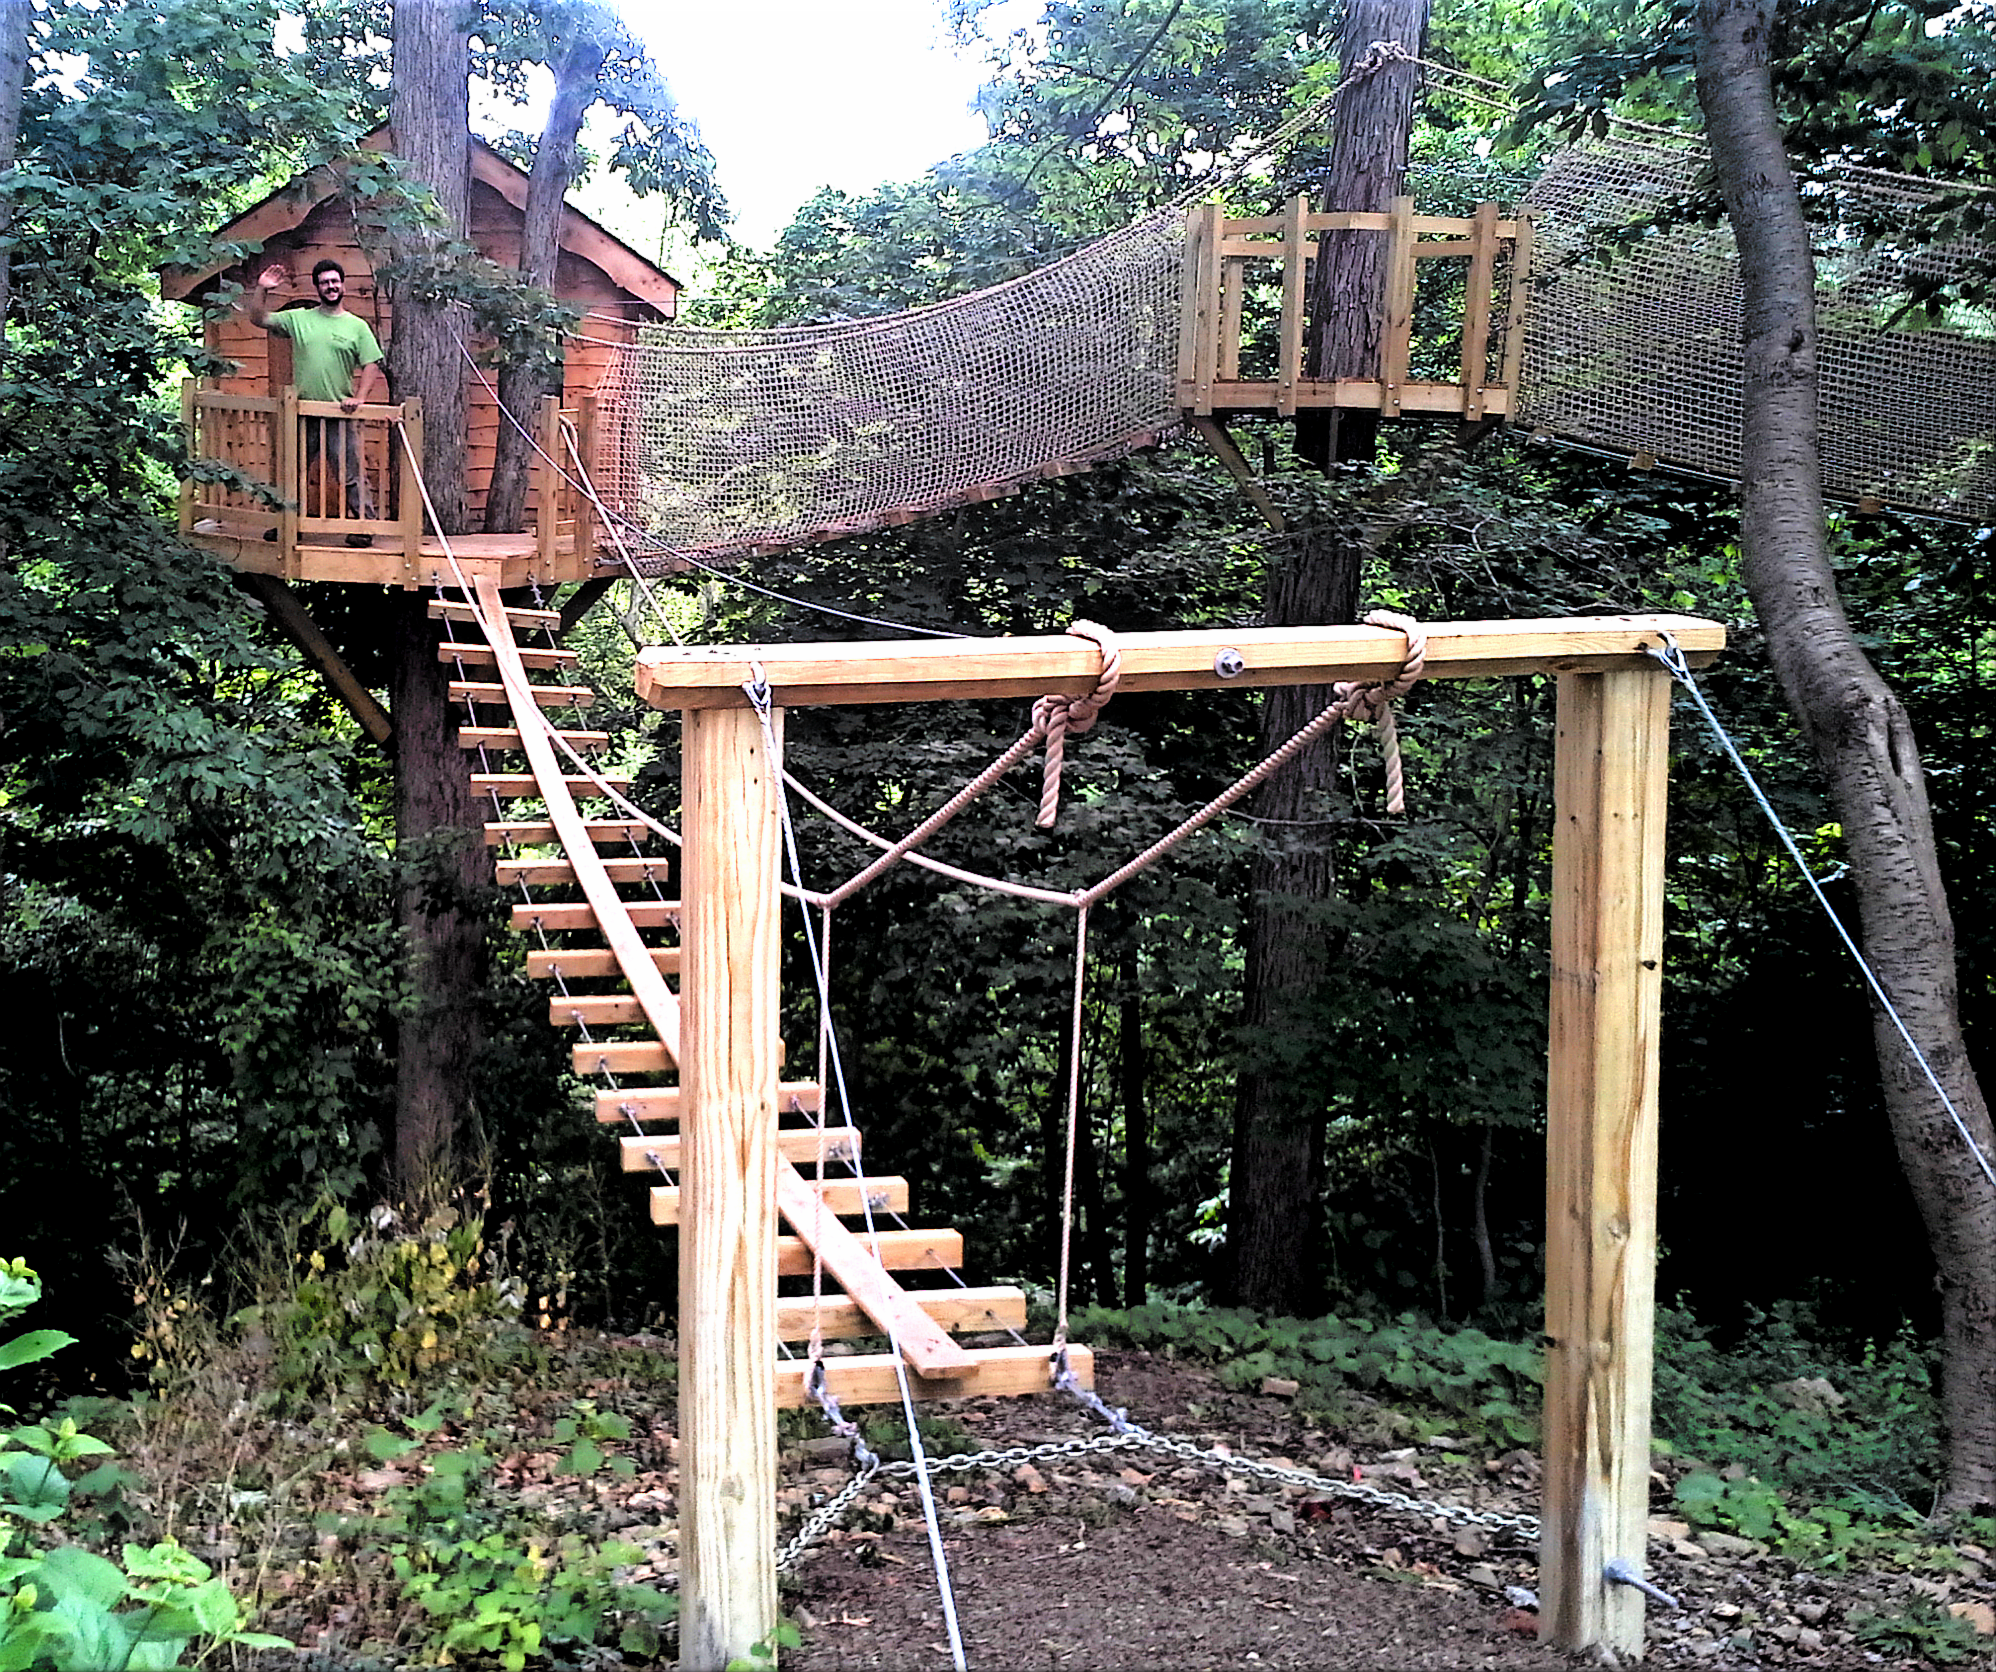 One of the most adventurous tree house projects we've ever done. Included 3